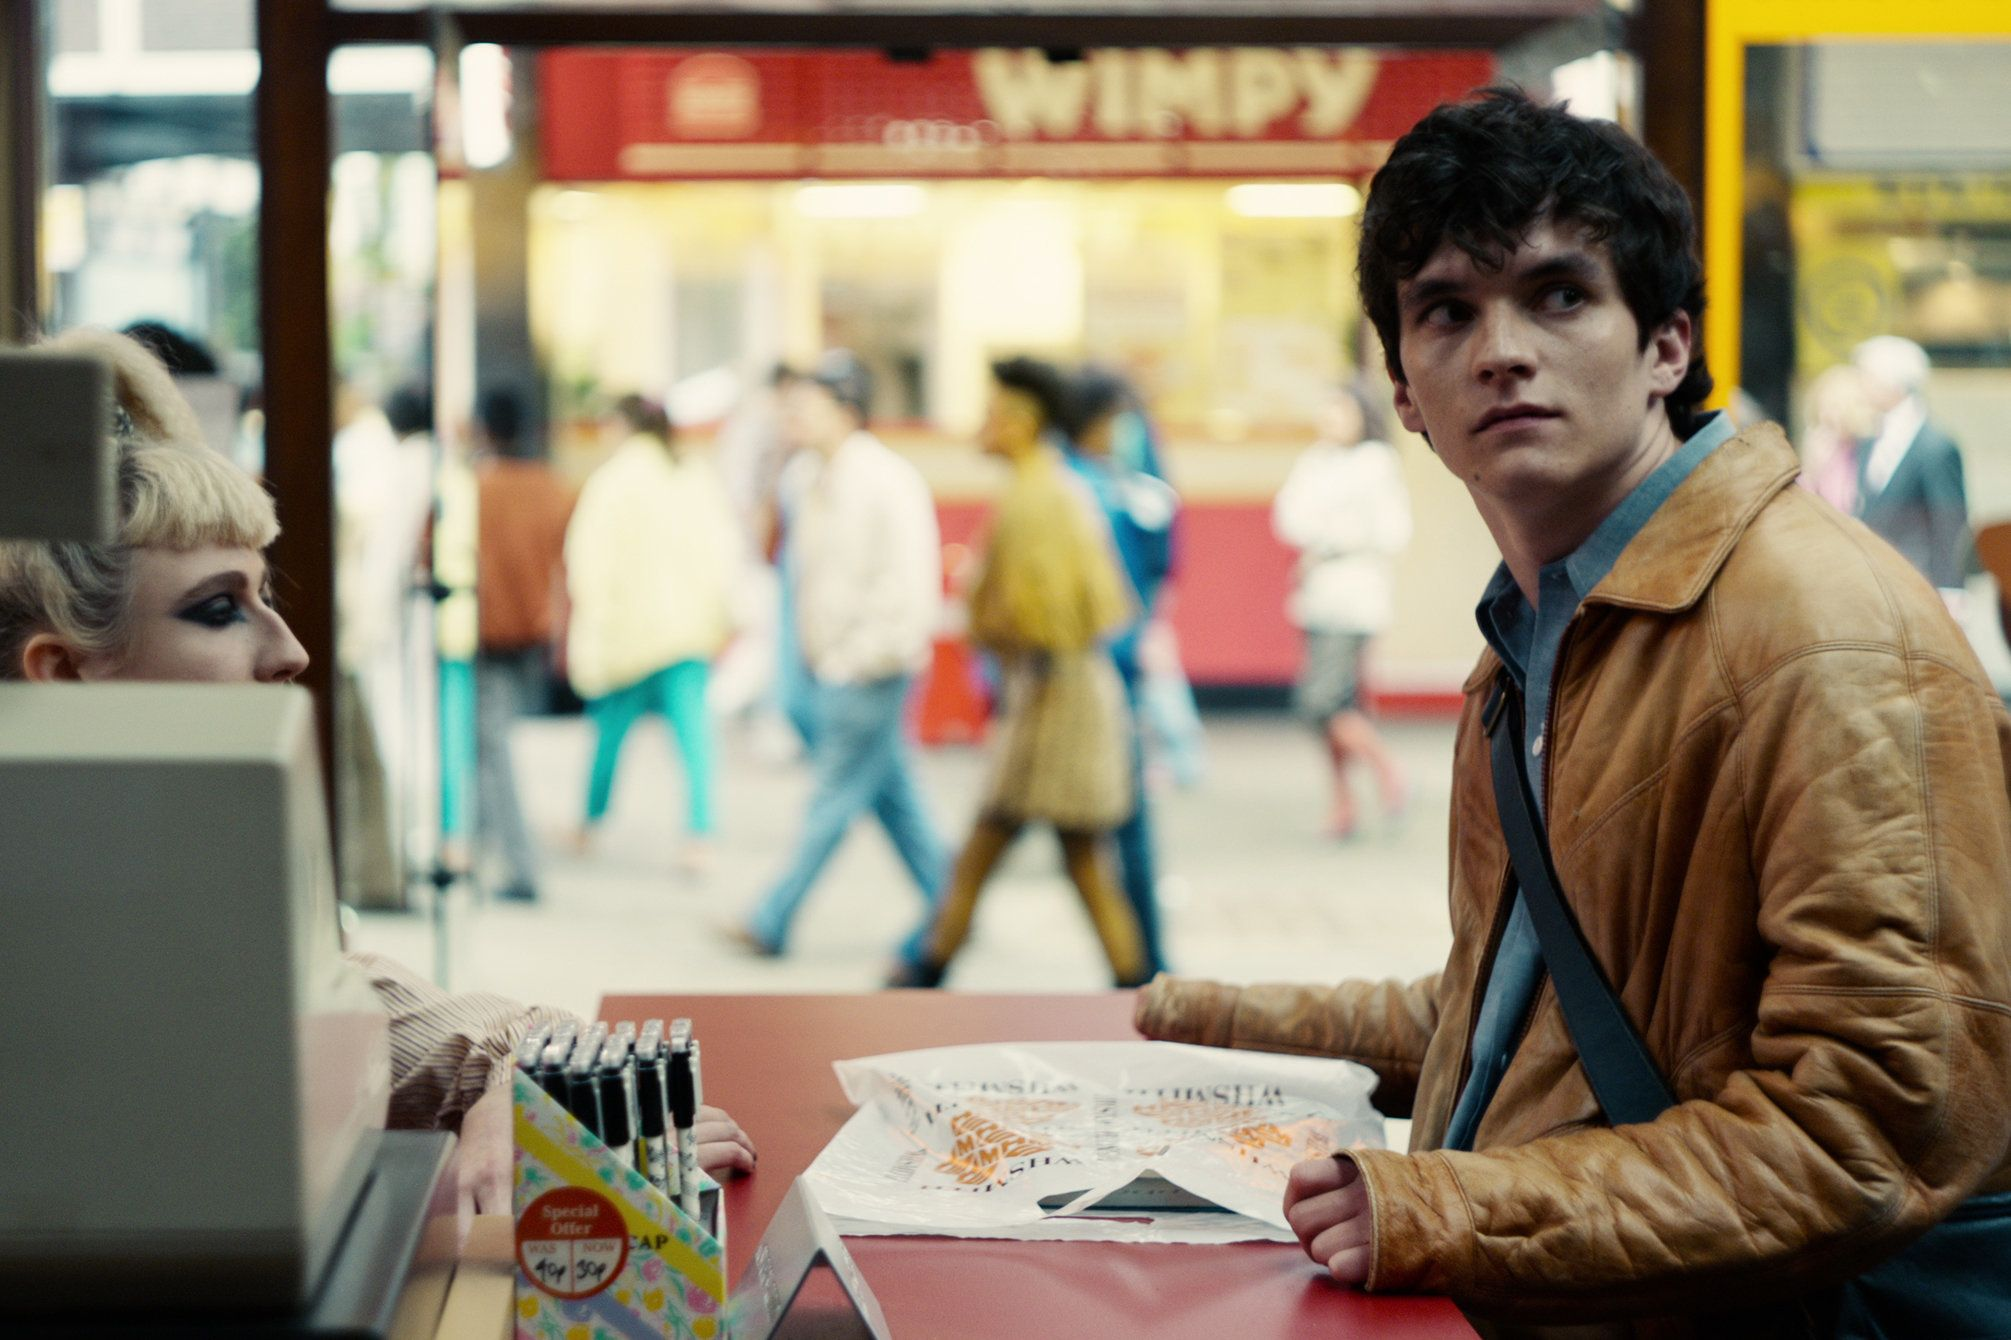 Fionn Whitehead On The Difficulties Of Making 'Bandersnatch', And The Scene He's 'Annoyed' Was